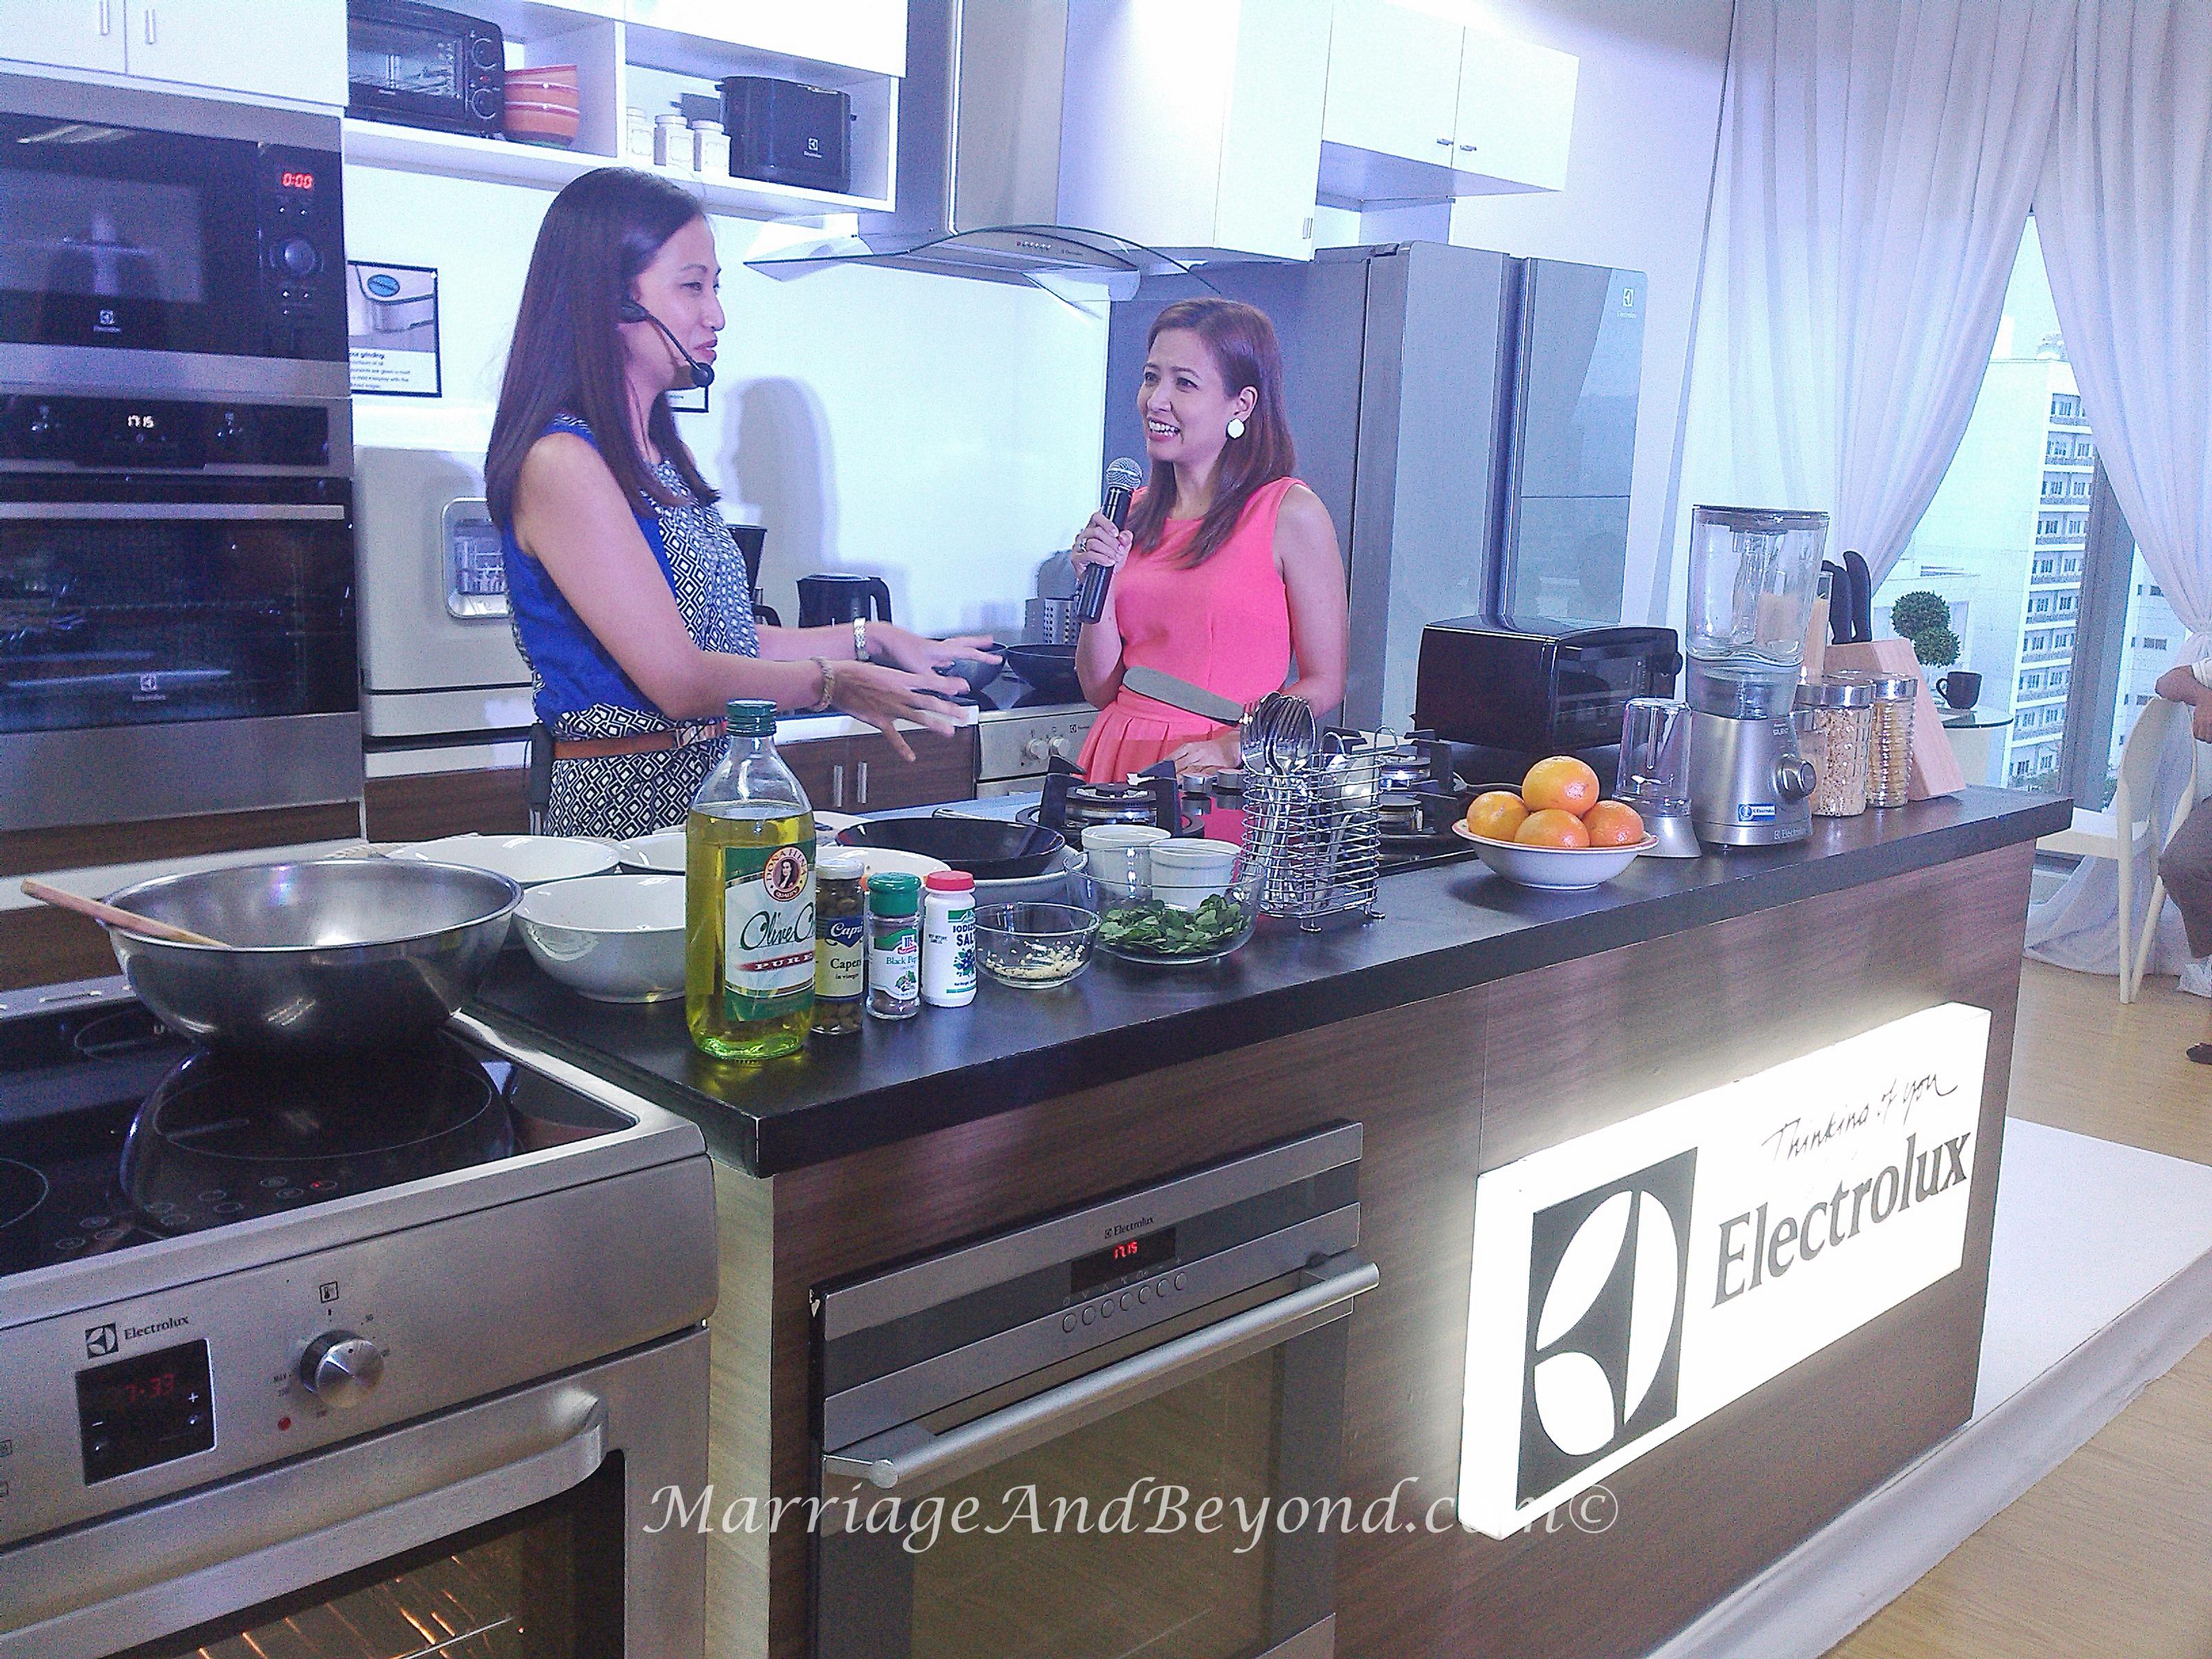 Janice Villanueva at the DelighfulE Yummy Campaign Launch of Electrolux